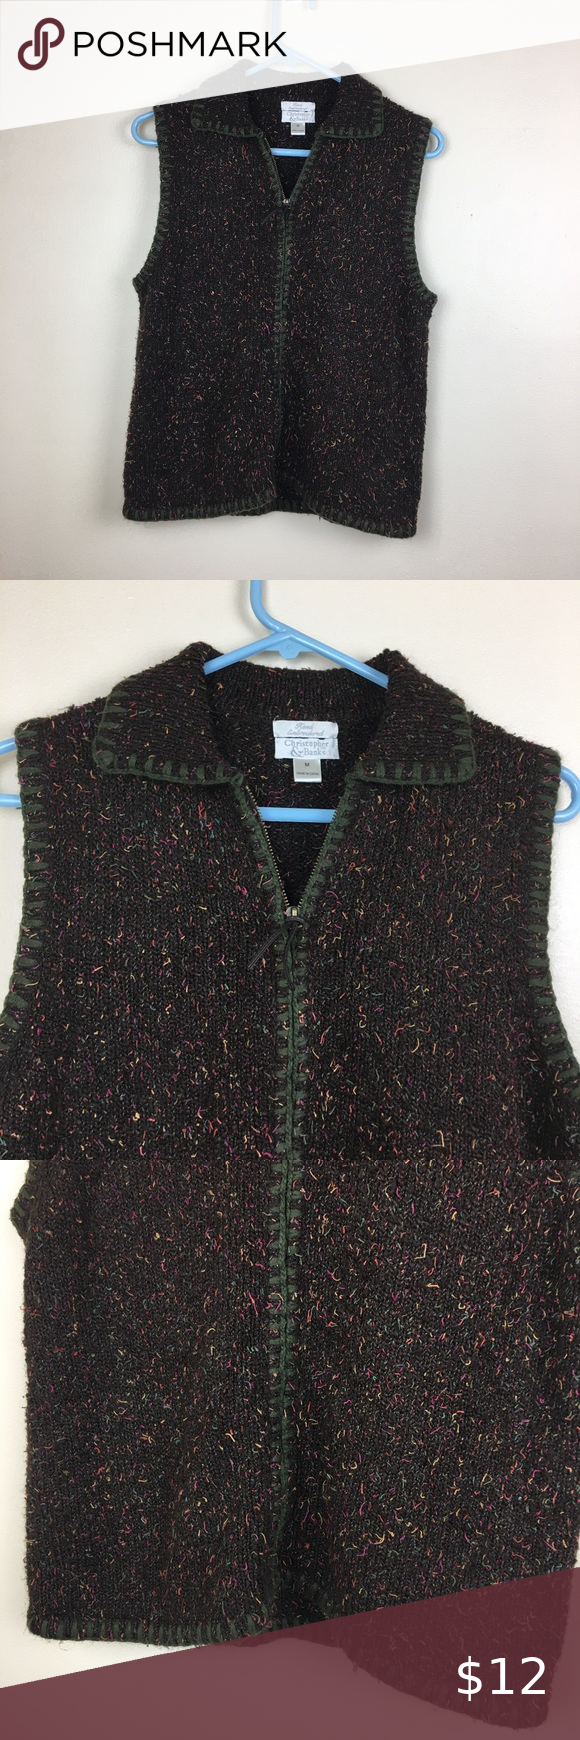 Christopher & Banks Hand Embroidered Sweater Vest This super soft and cozy sweater vest is in like new condition. It is from Christopher & Banks. Christopher & Banks Size Medium Christopher & Banks Sweaters